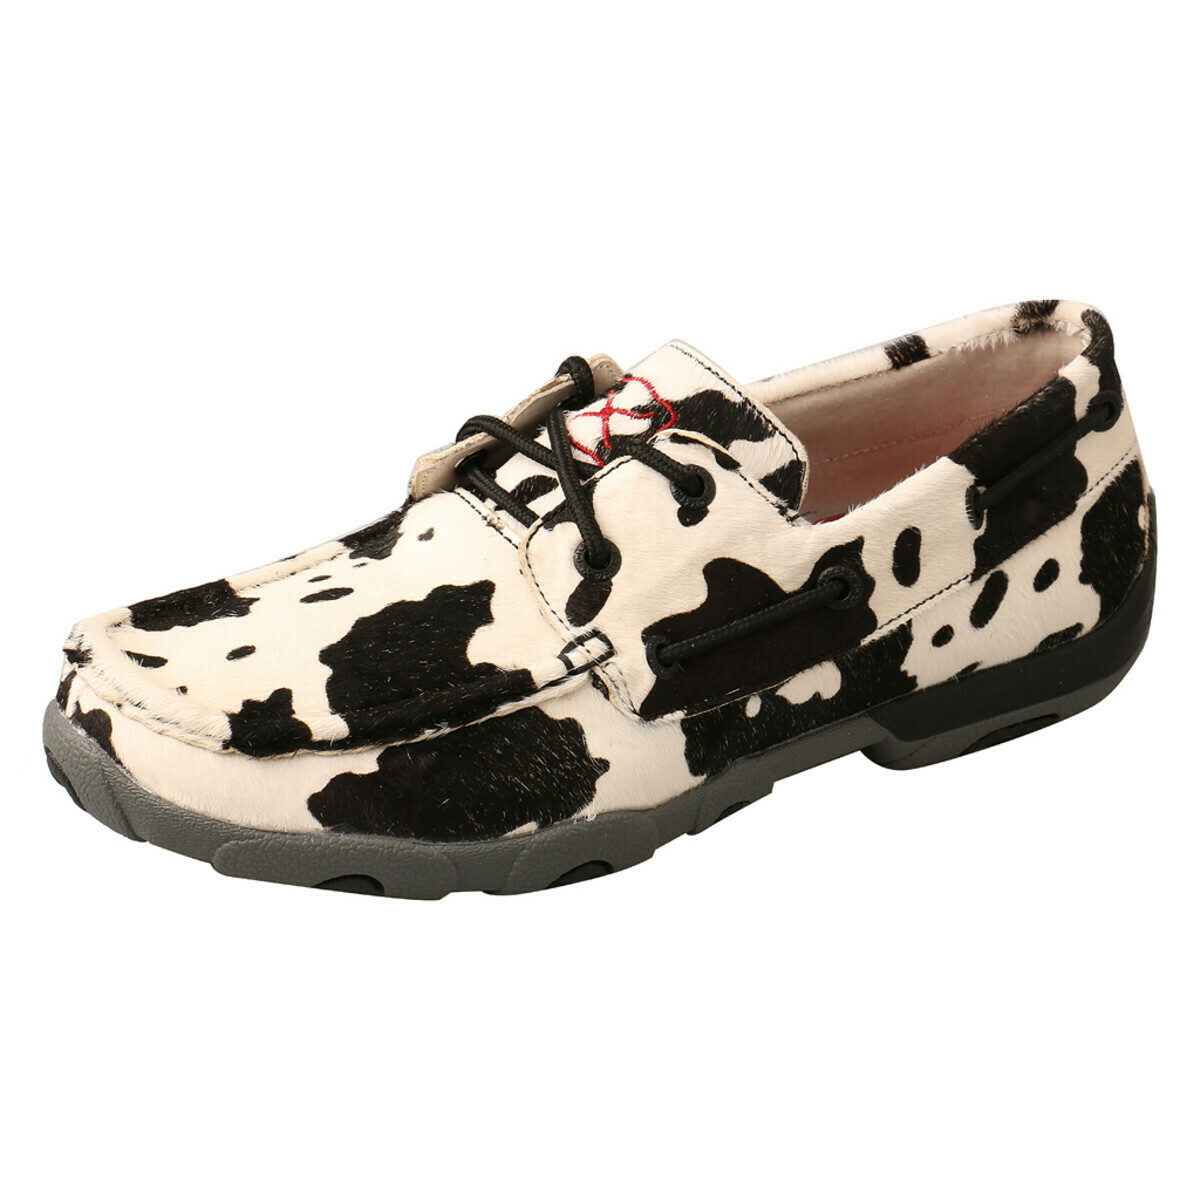 WDM0131 Cow Print DRIVING MOC White/Black